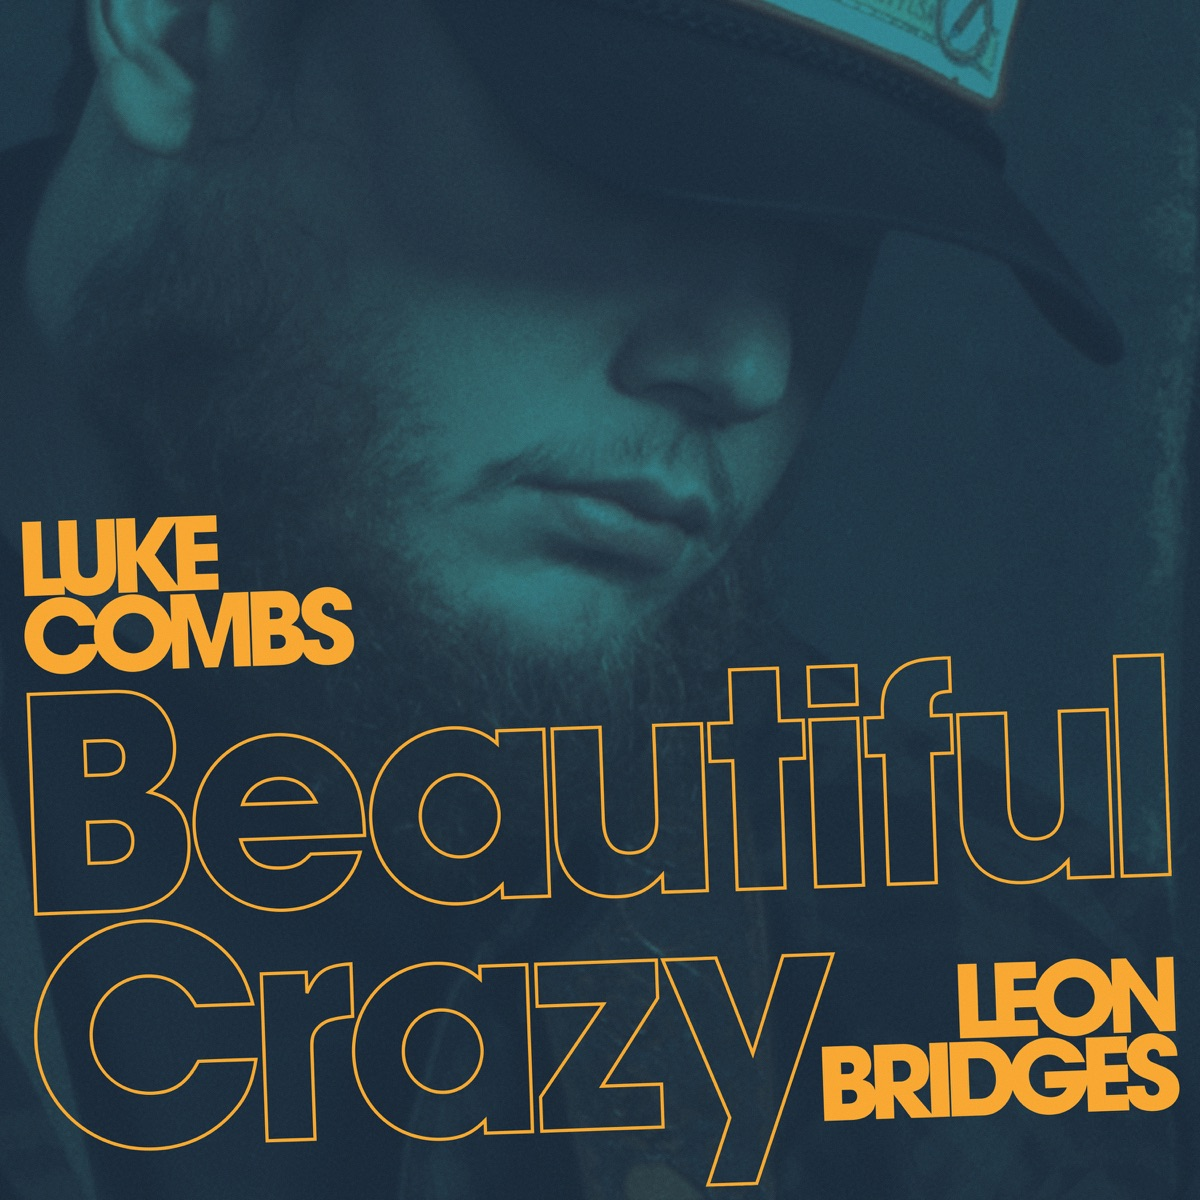 Beautiful Crazy Live feat Leon Bridges - Single Luke Combs CD cover